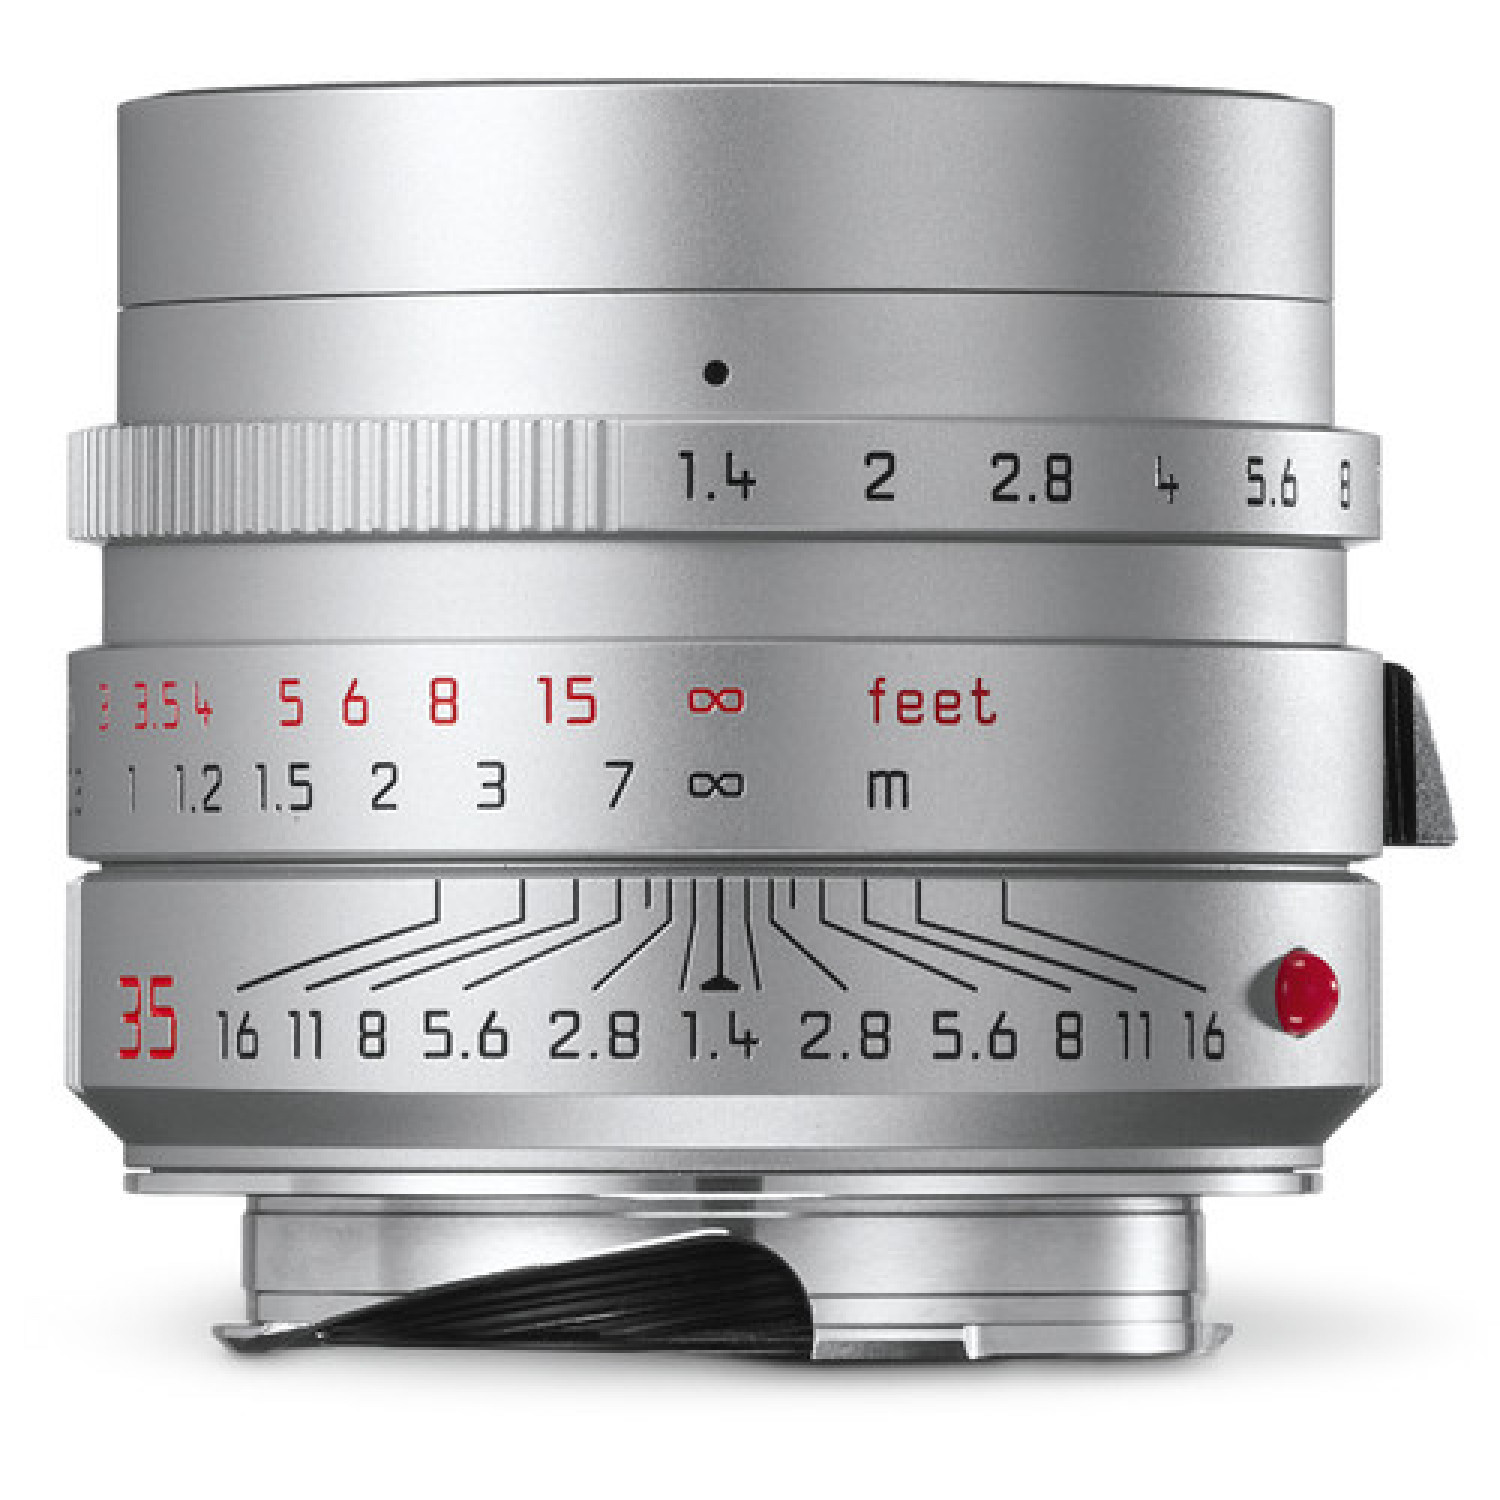 Buy Leica 35mm F/1.4 Summilux-M ASPH Lens (Silver) In Canada Infographic